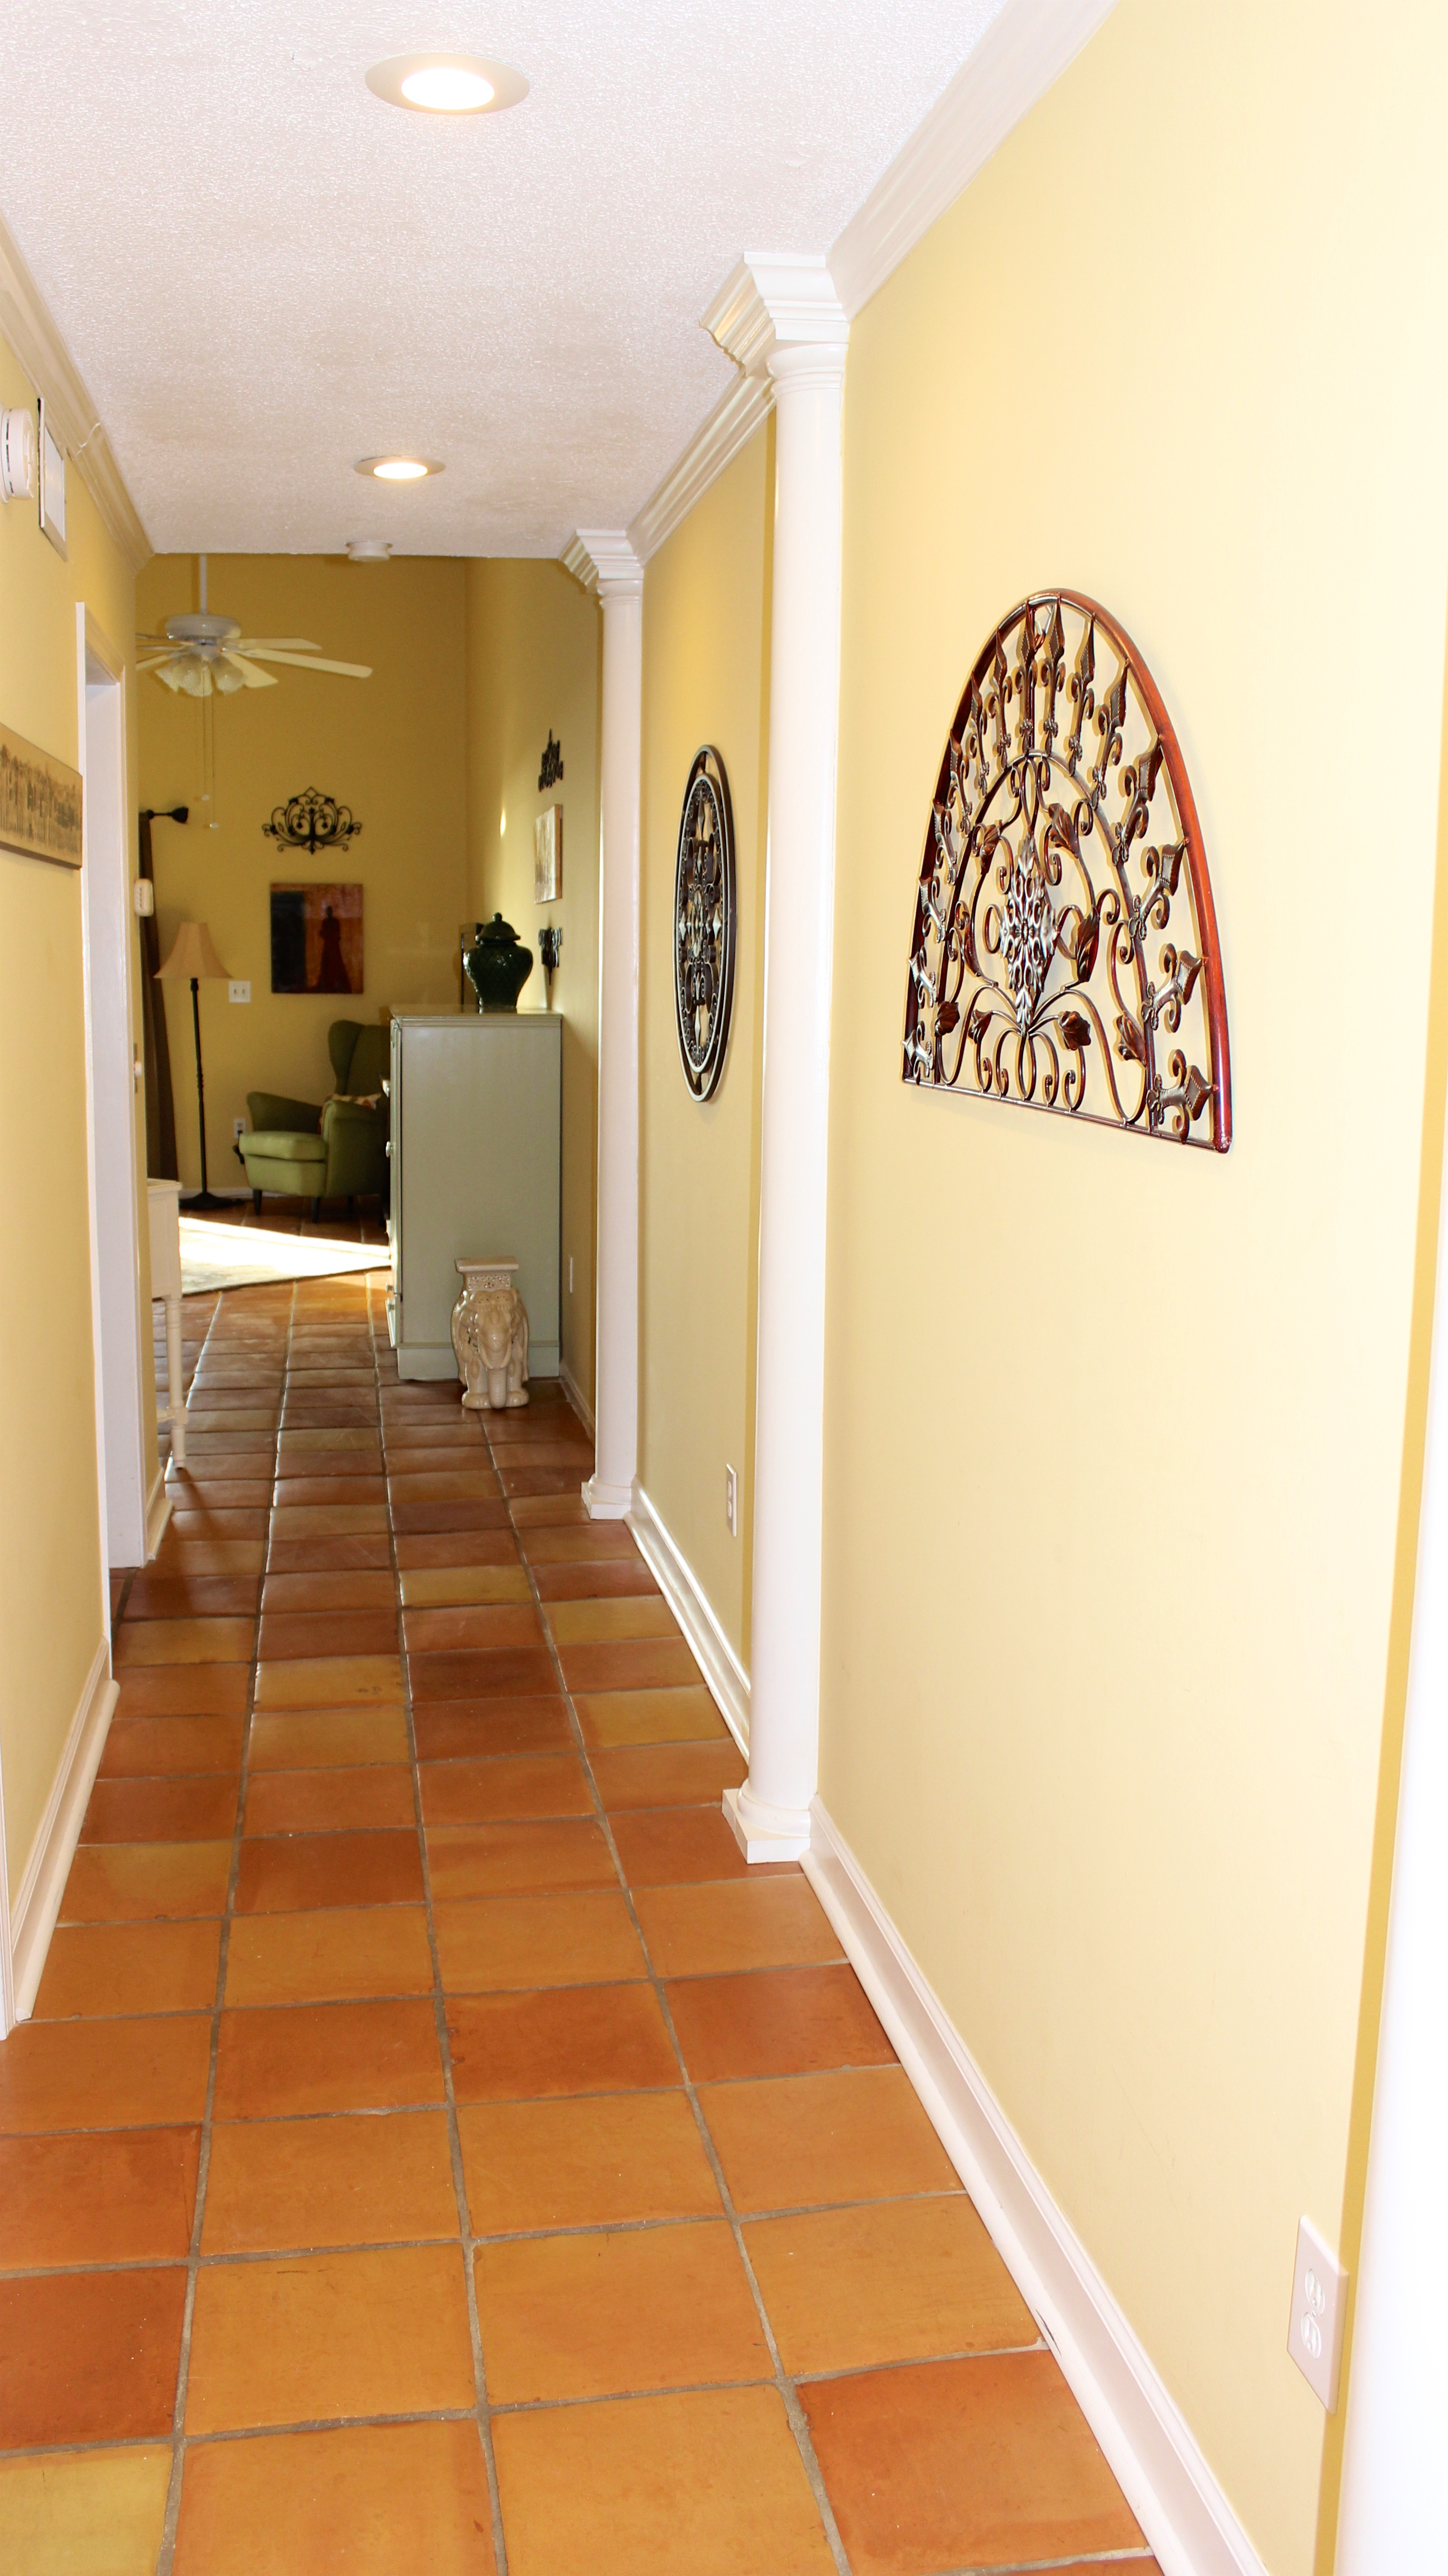 Features include accent pillars, iron artwork and whimsical decorating touches.